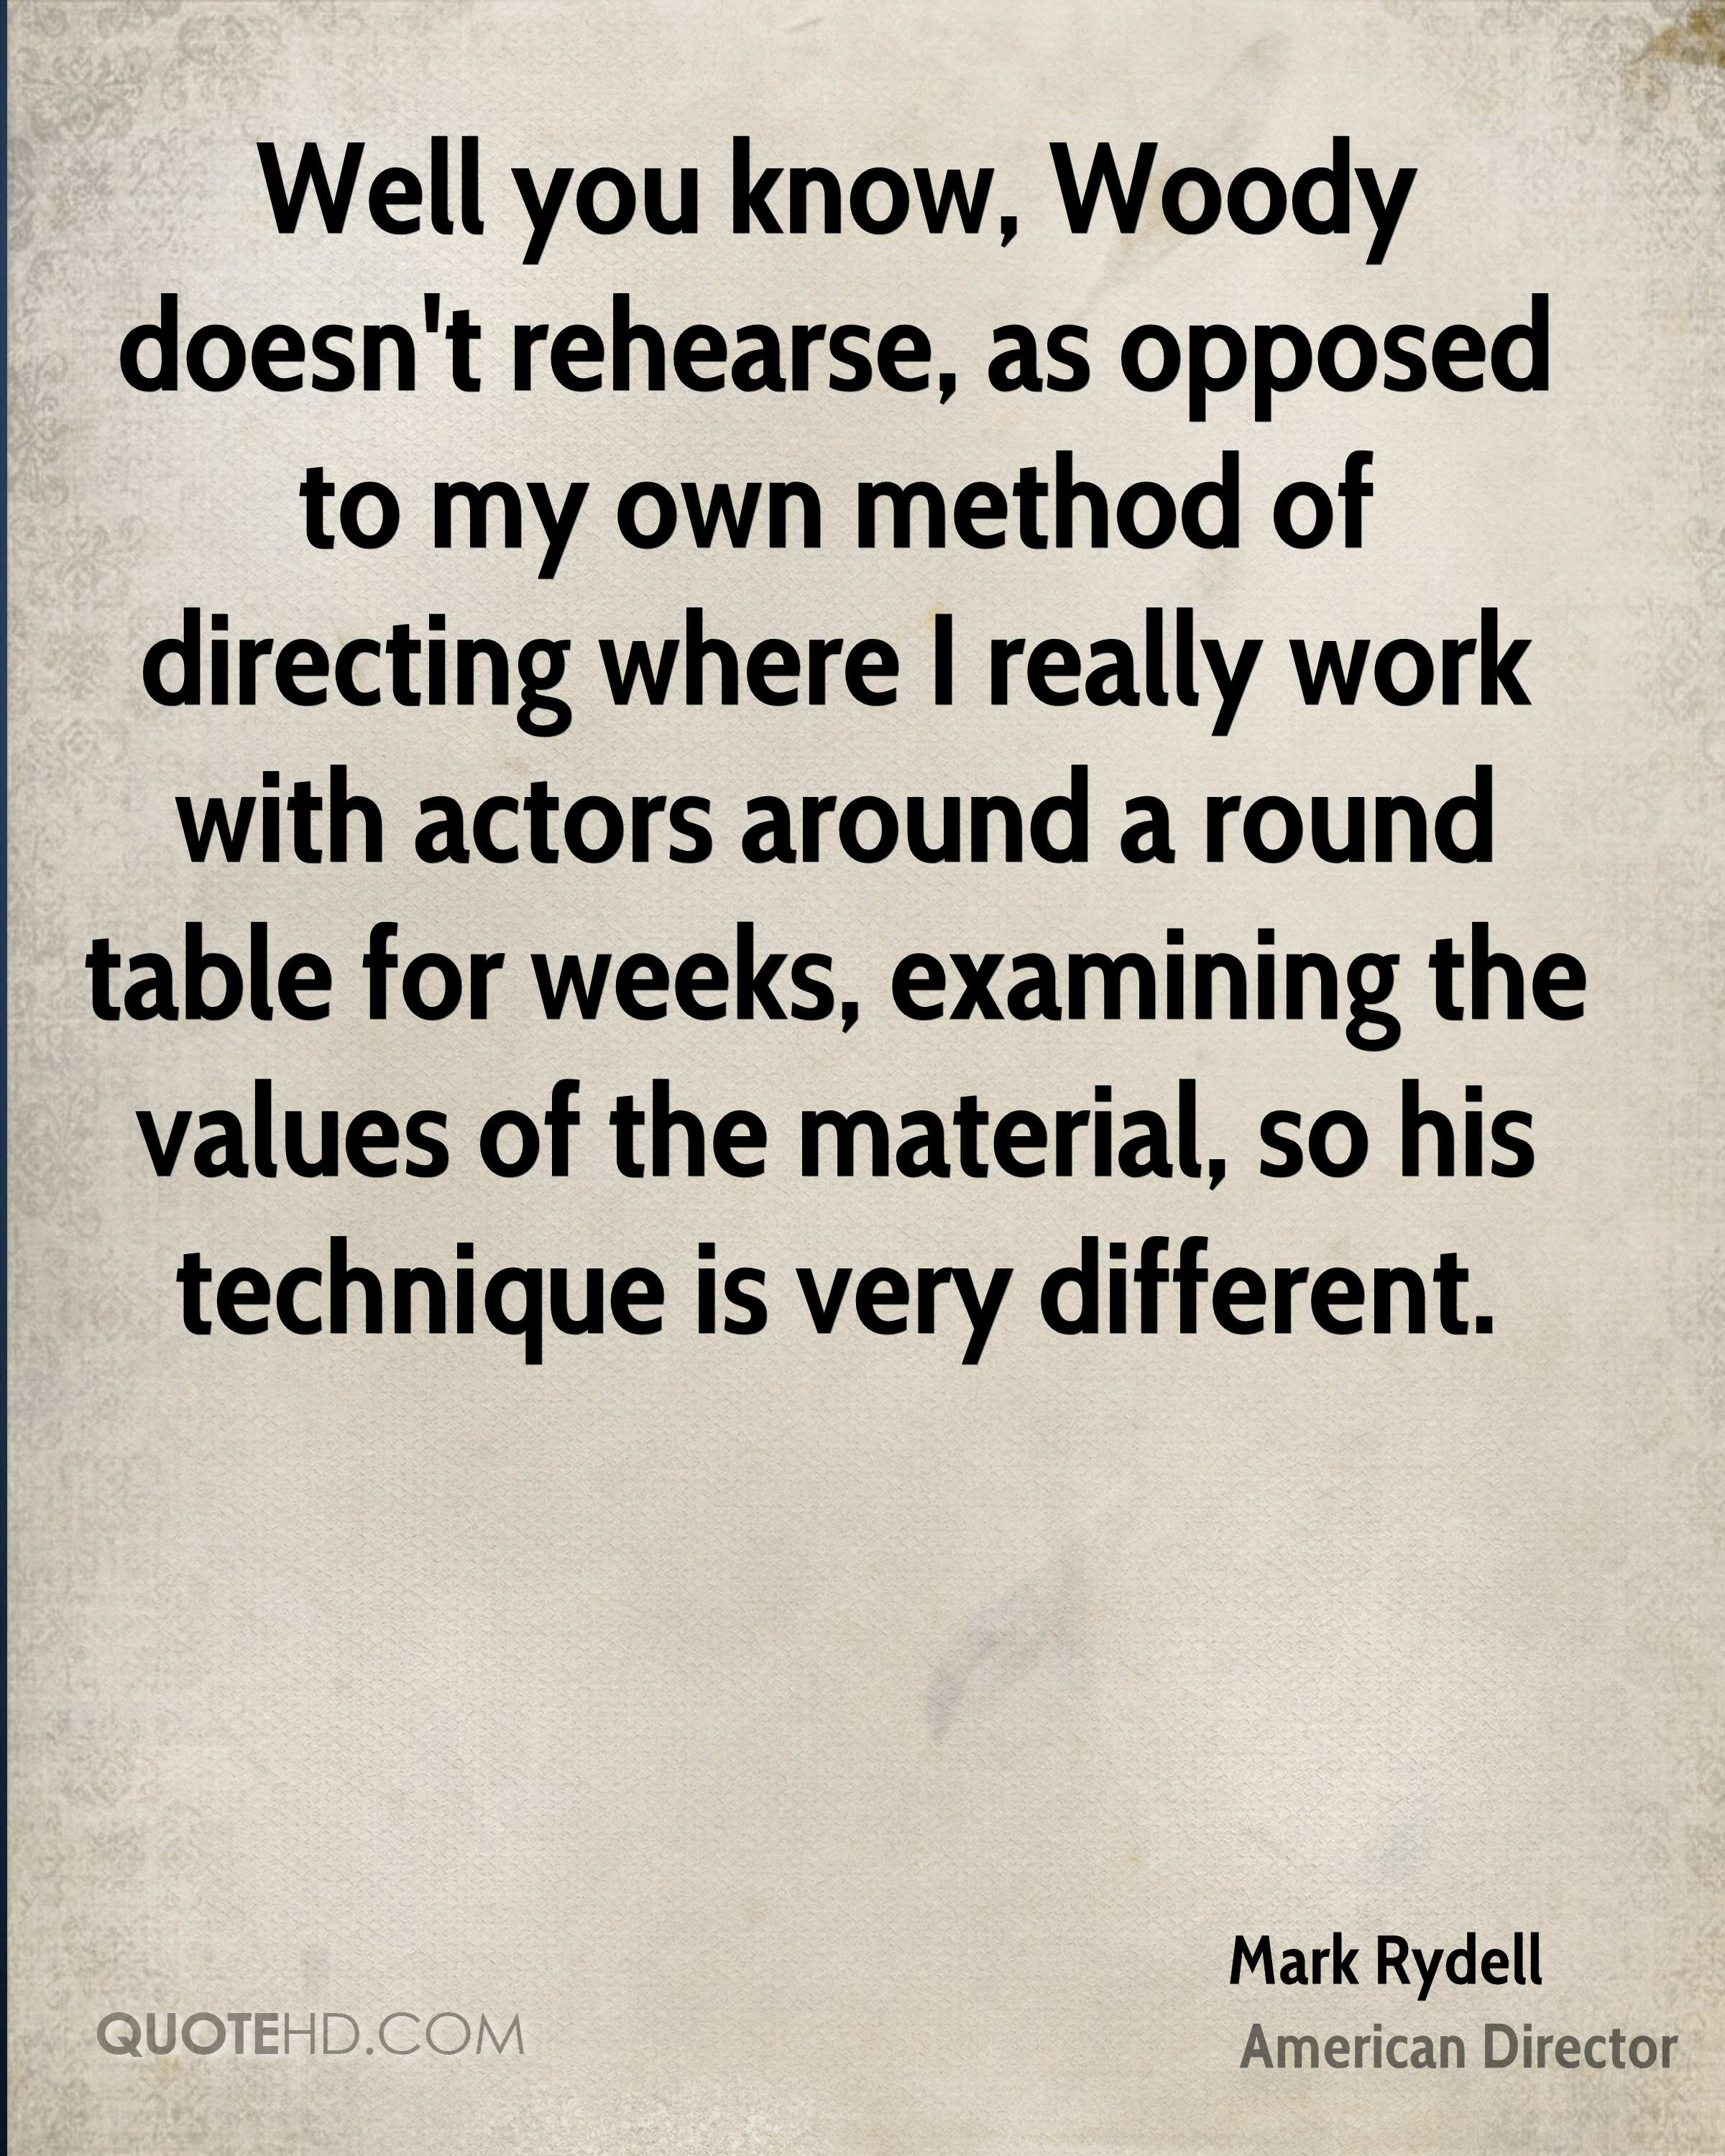 Well you know, Woody doesn't rehearse, as opposed to my own method of directing where I really work with actors around a round table for weeks, examining the values of the material, so his technique is very different.